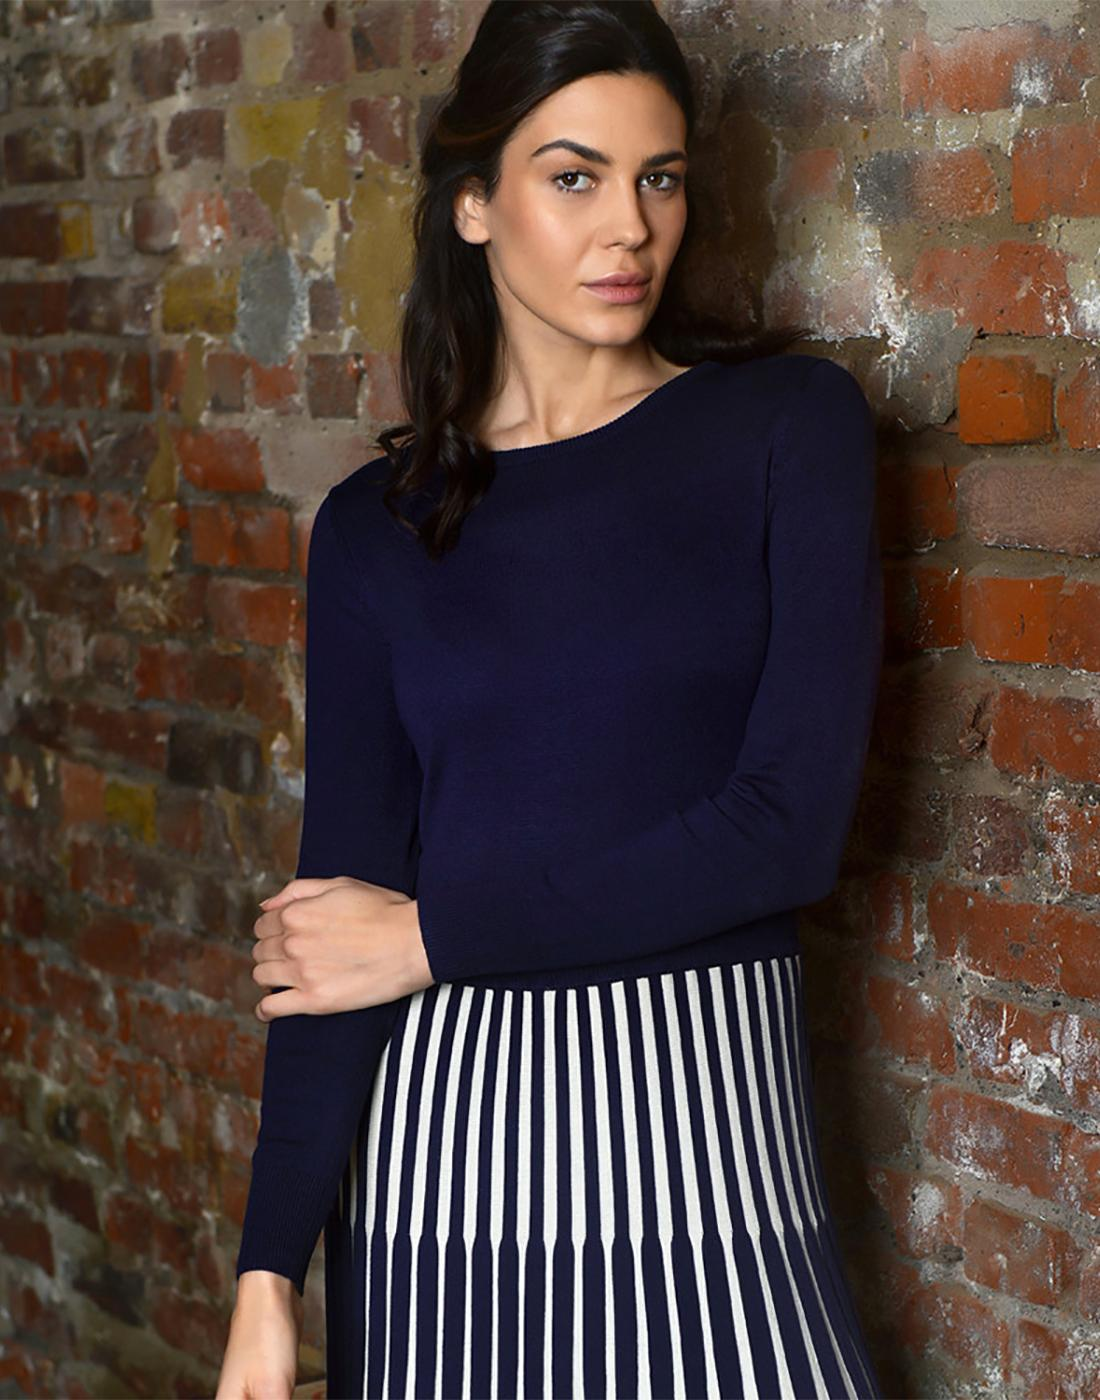 Lewes FEVER Retro Vintage Knitted Dress in Navy